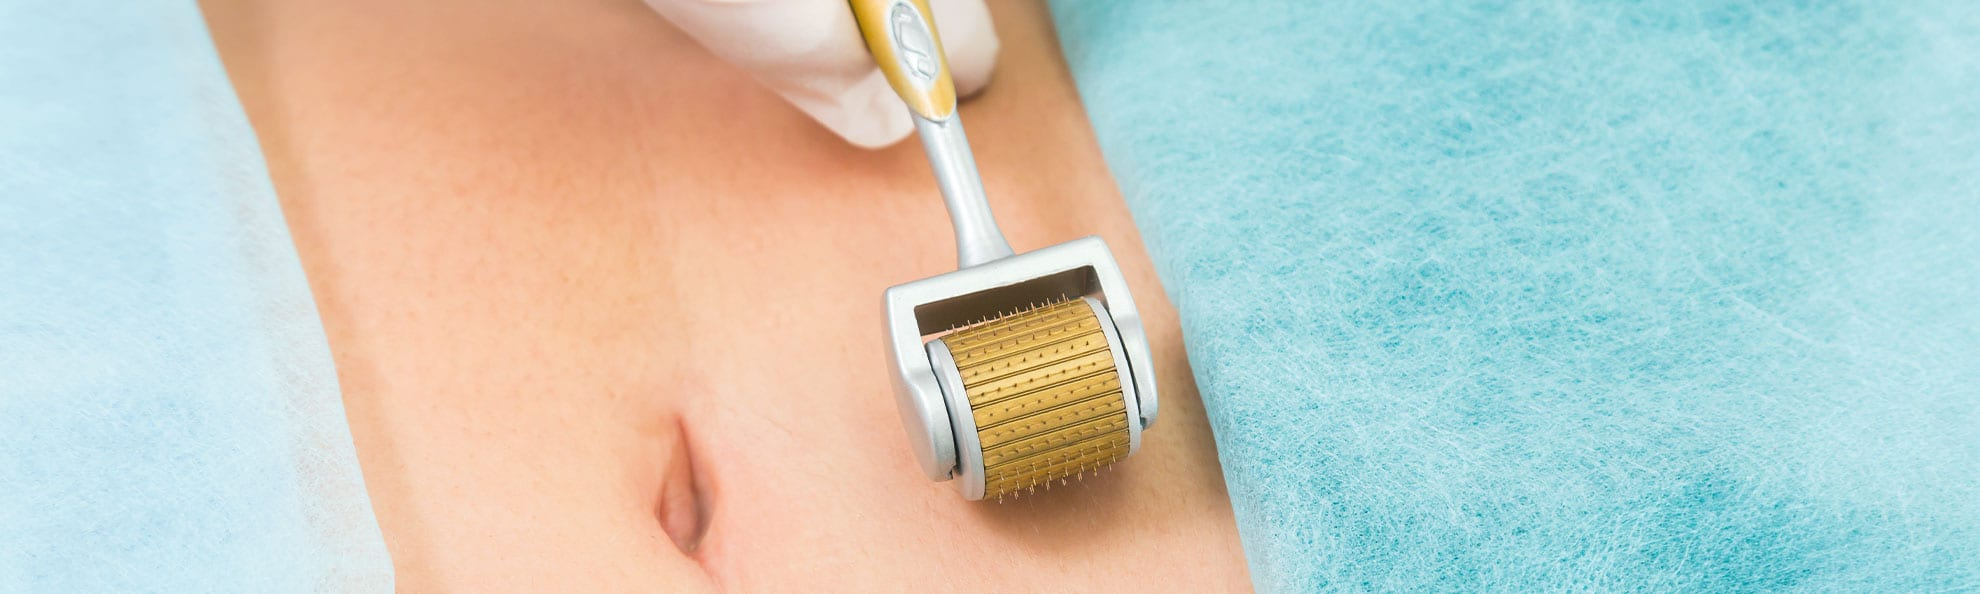 The Dermaroller may be the solution for your stretch marks